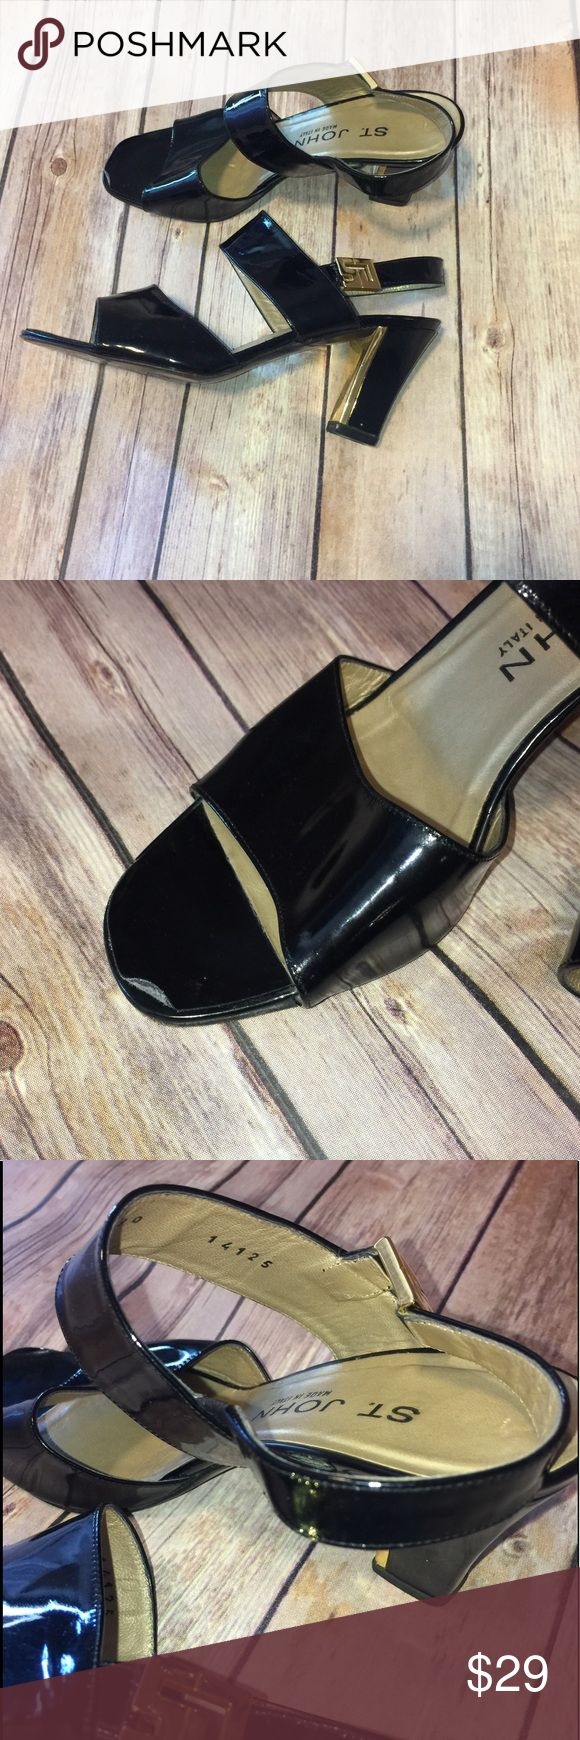 St John strappy patent high heel sandal With gold embellishments. Size 5.5 price reflects condition. Still lots of life left in these awesome heels! No scuff marks!!! St. John Shoes Heels